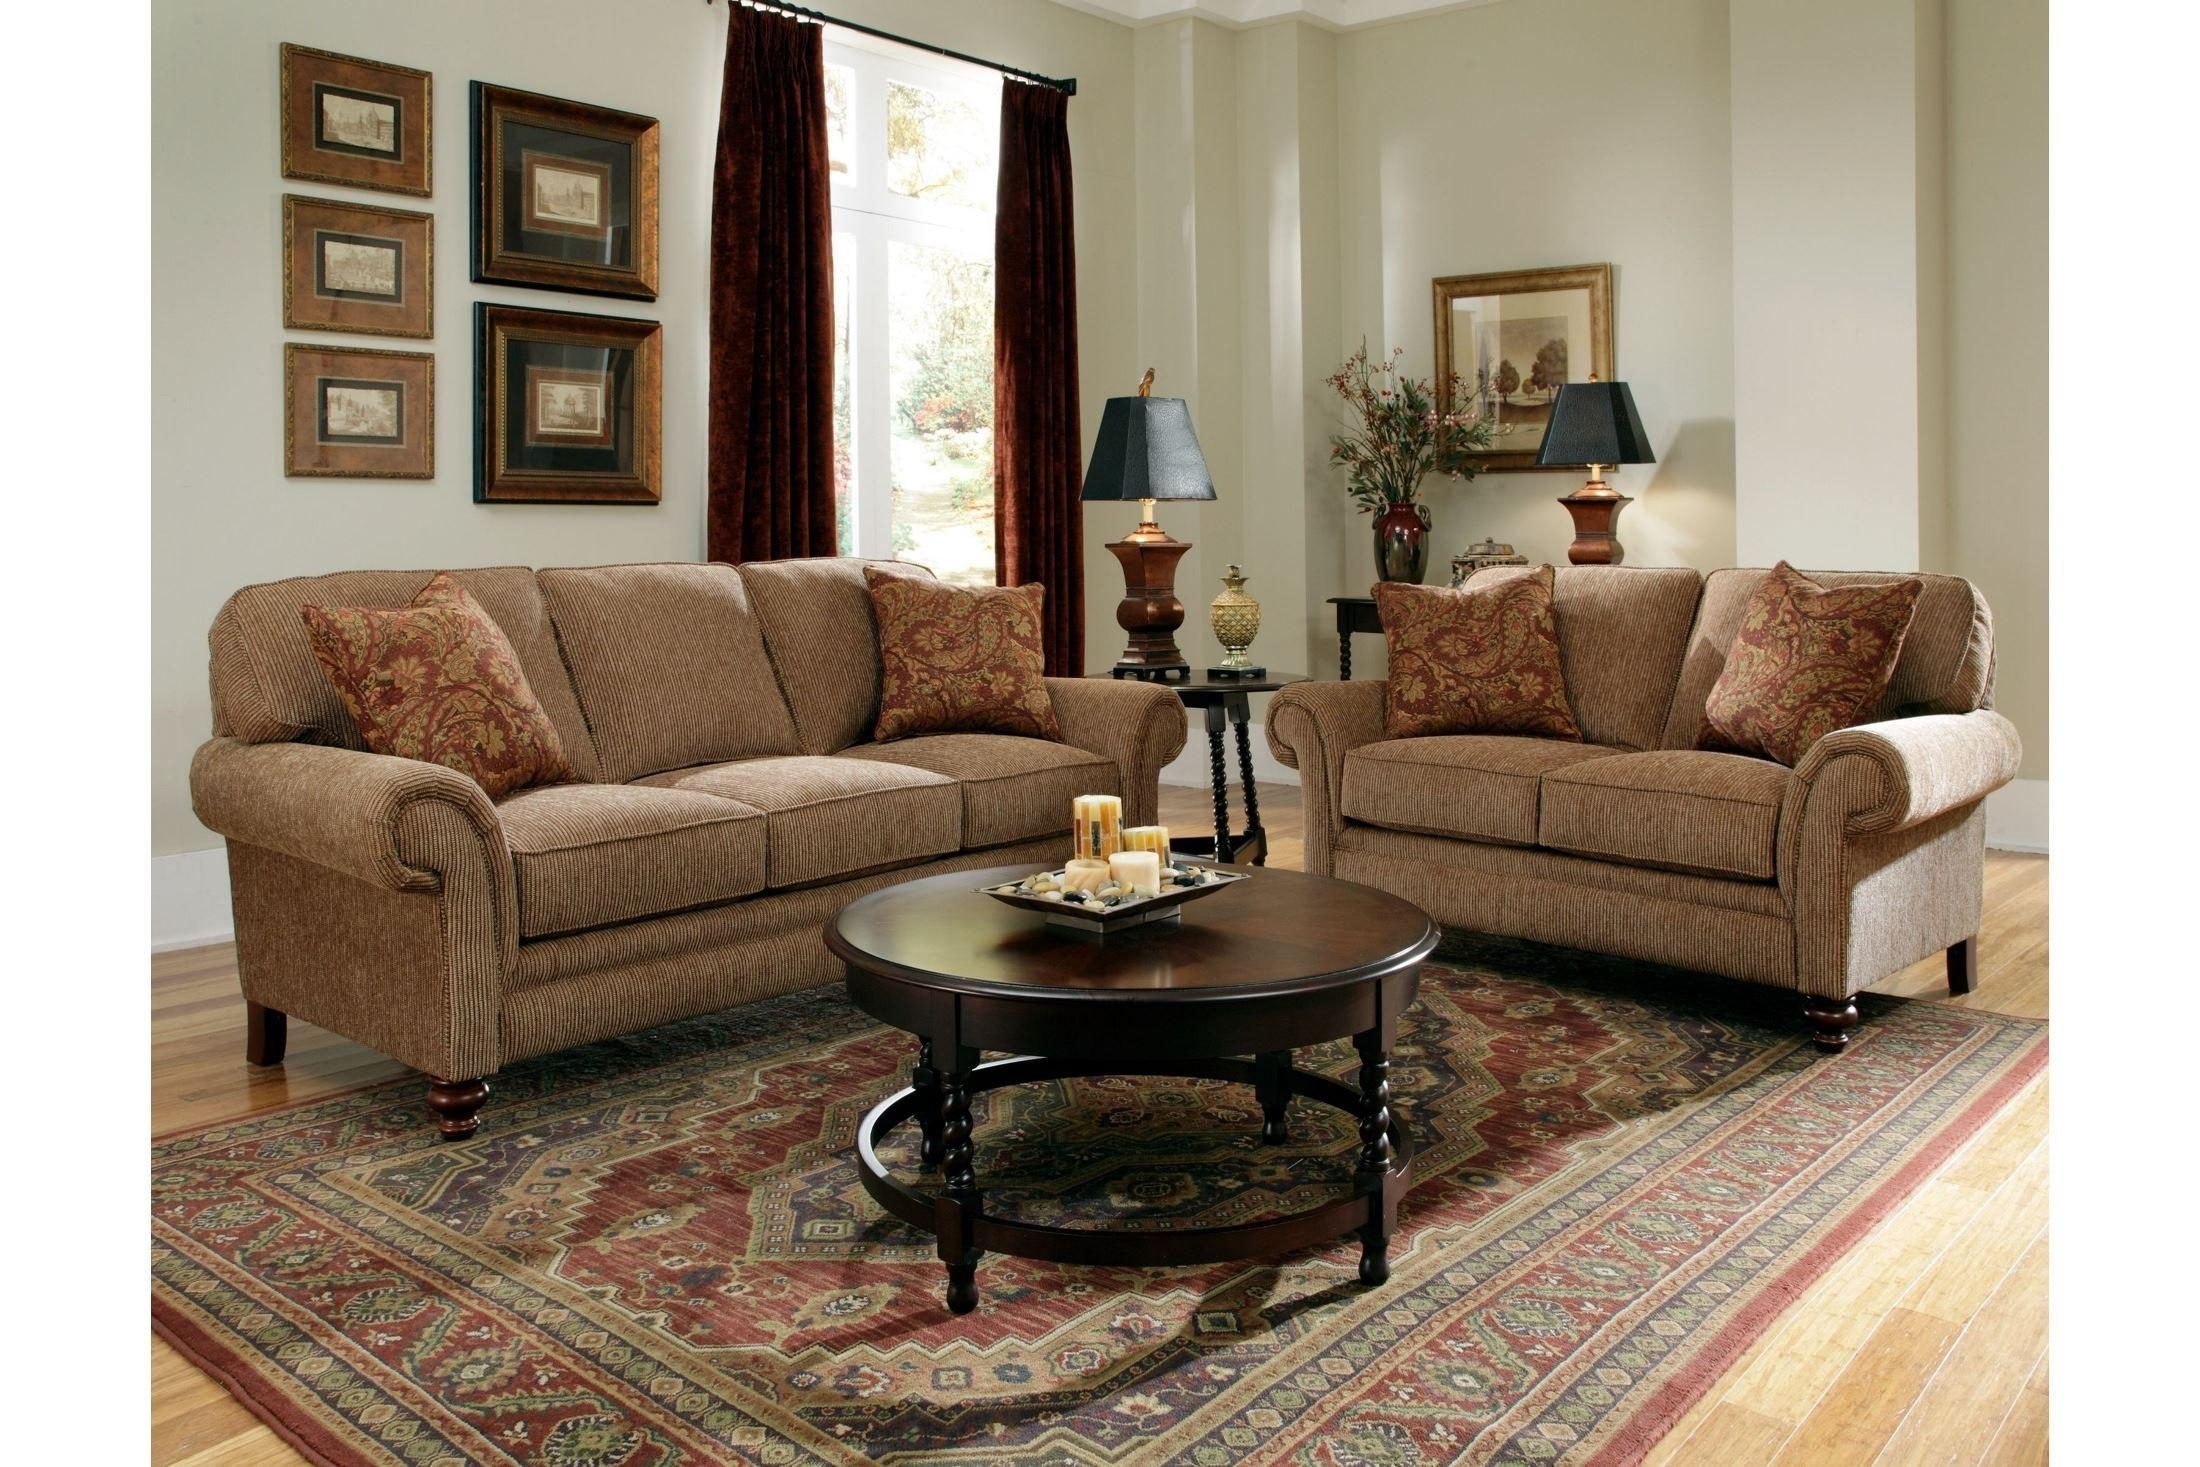 Larissa Cherry Stain Chenille Fabric Sofa From Broyhill (6112 3Q1 Inside Broyhill Emily Sofas (Image 19 of 20)